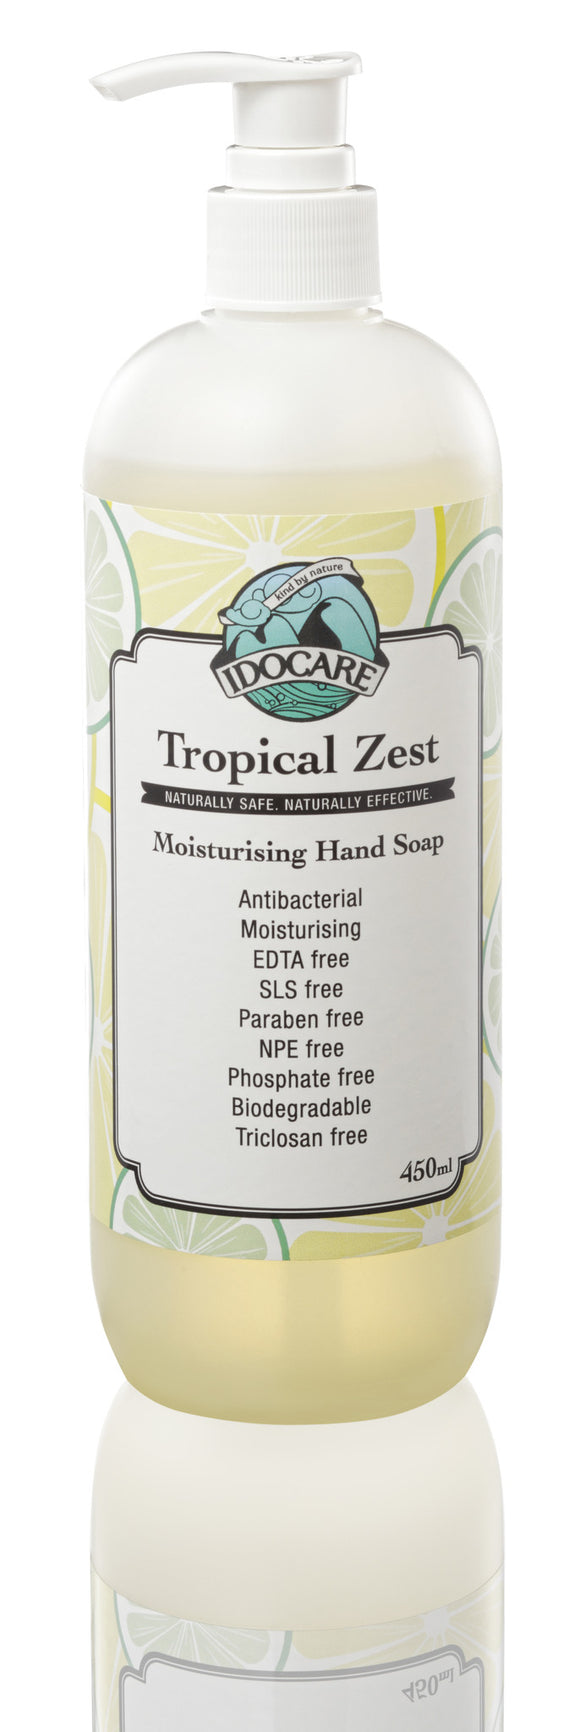 Idocare Tropical Zest Moisturising Hand Soap (450ml)